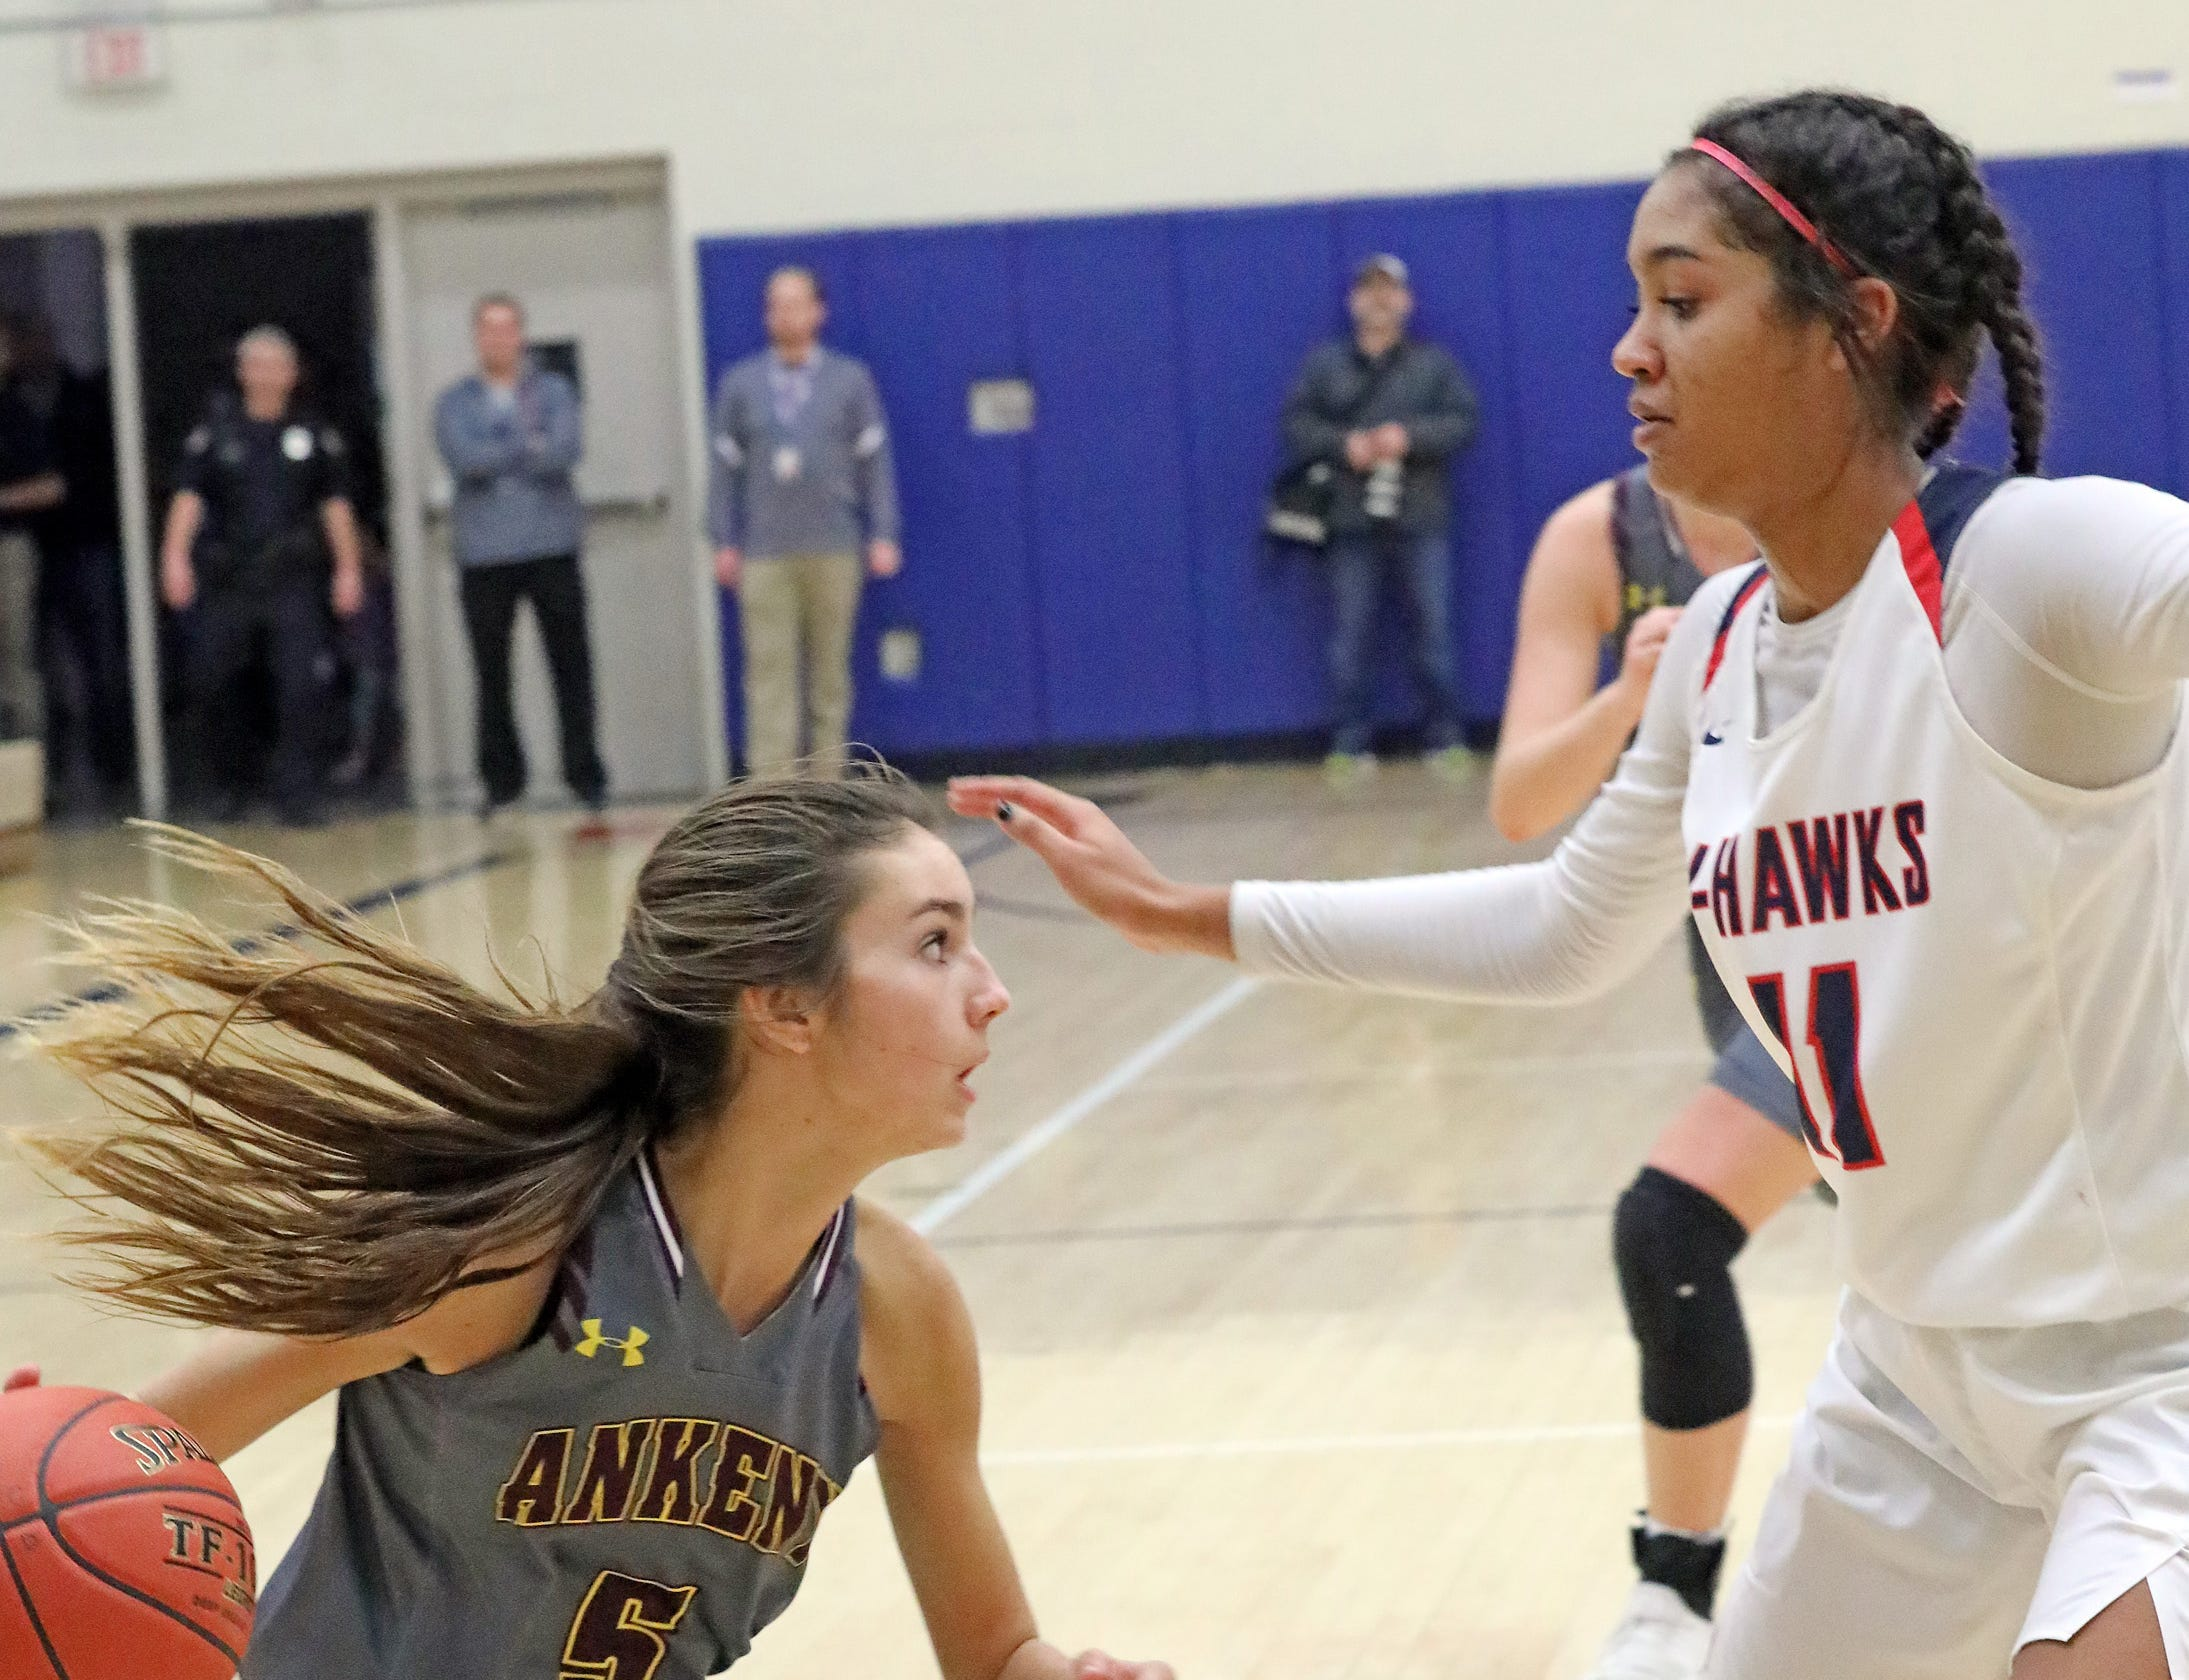 Ankeny junior guard Kayla Pitz tries to get past Urbandale junior forward Maya Gyamfi as the Ankeny Hawkettes compete against the Urbandale J-Hawks in high school basketball on Friday, Dec. 14, 2018 at Urbandale High School. Ankeny won 46 to 40.